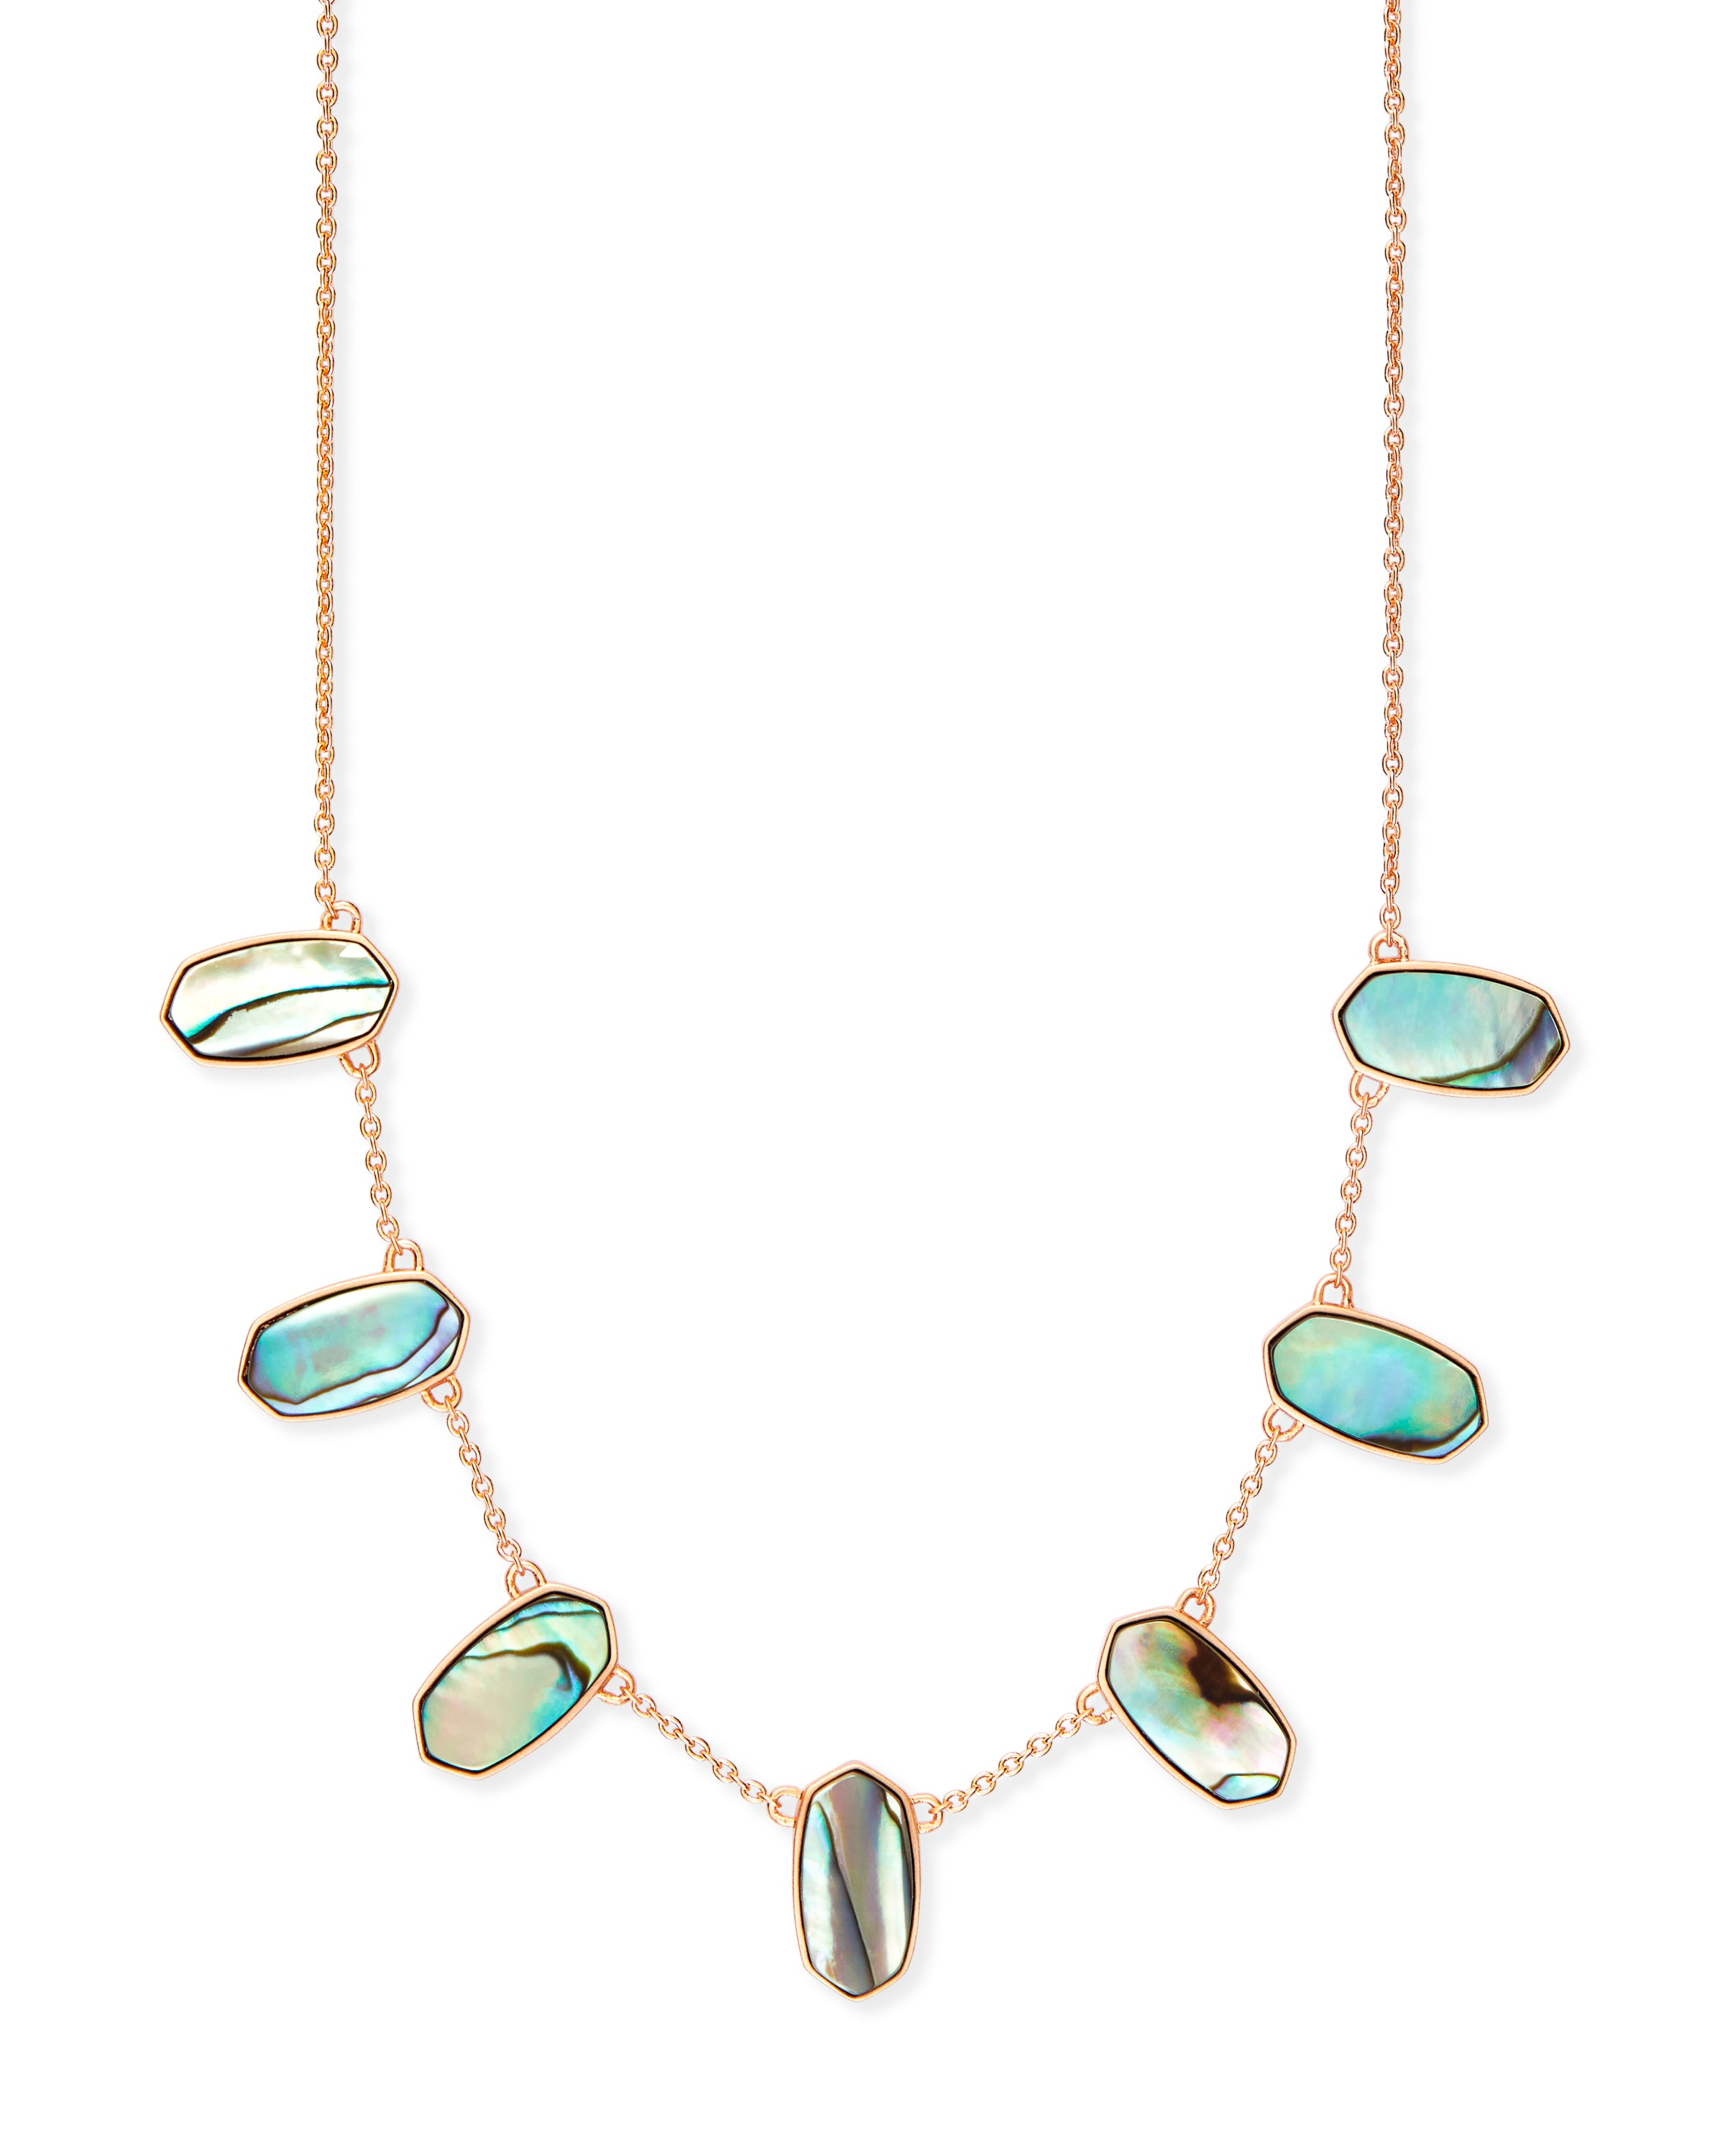 Kendra Scott Meadow Rose Gold Statement Necklace In Abalone Shell